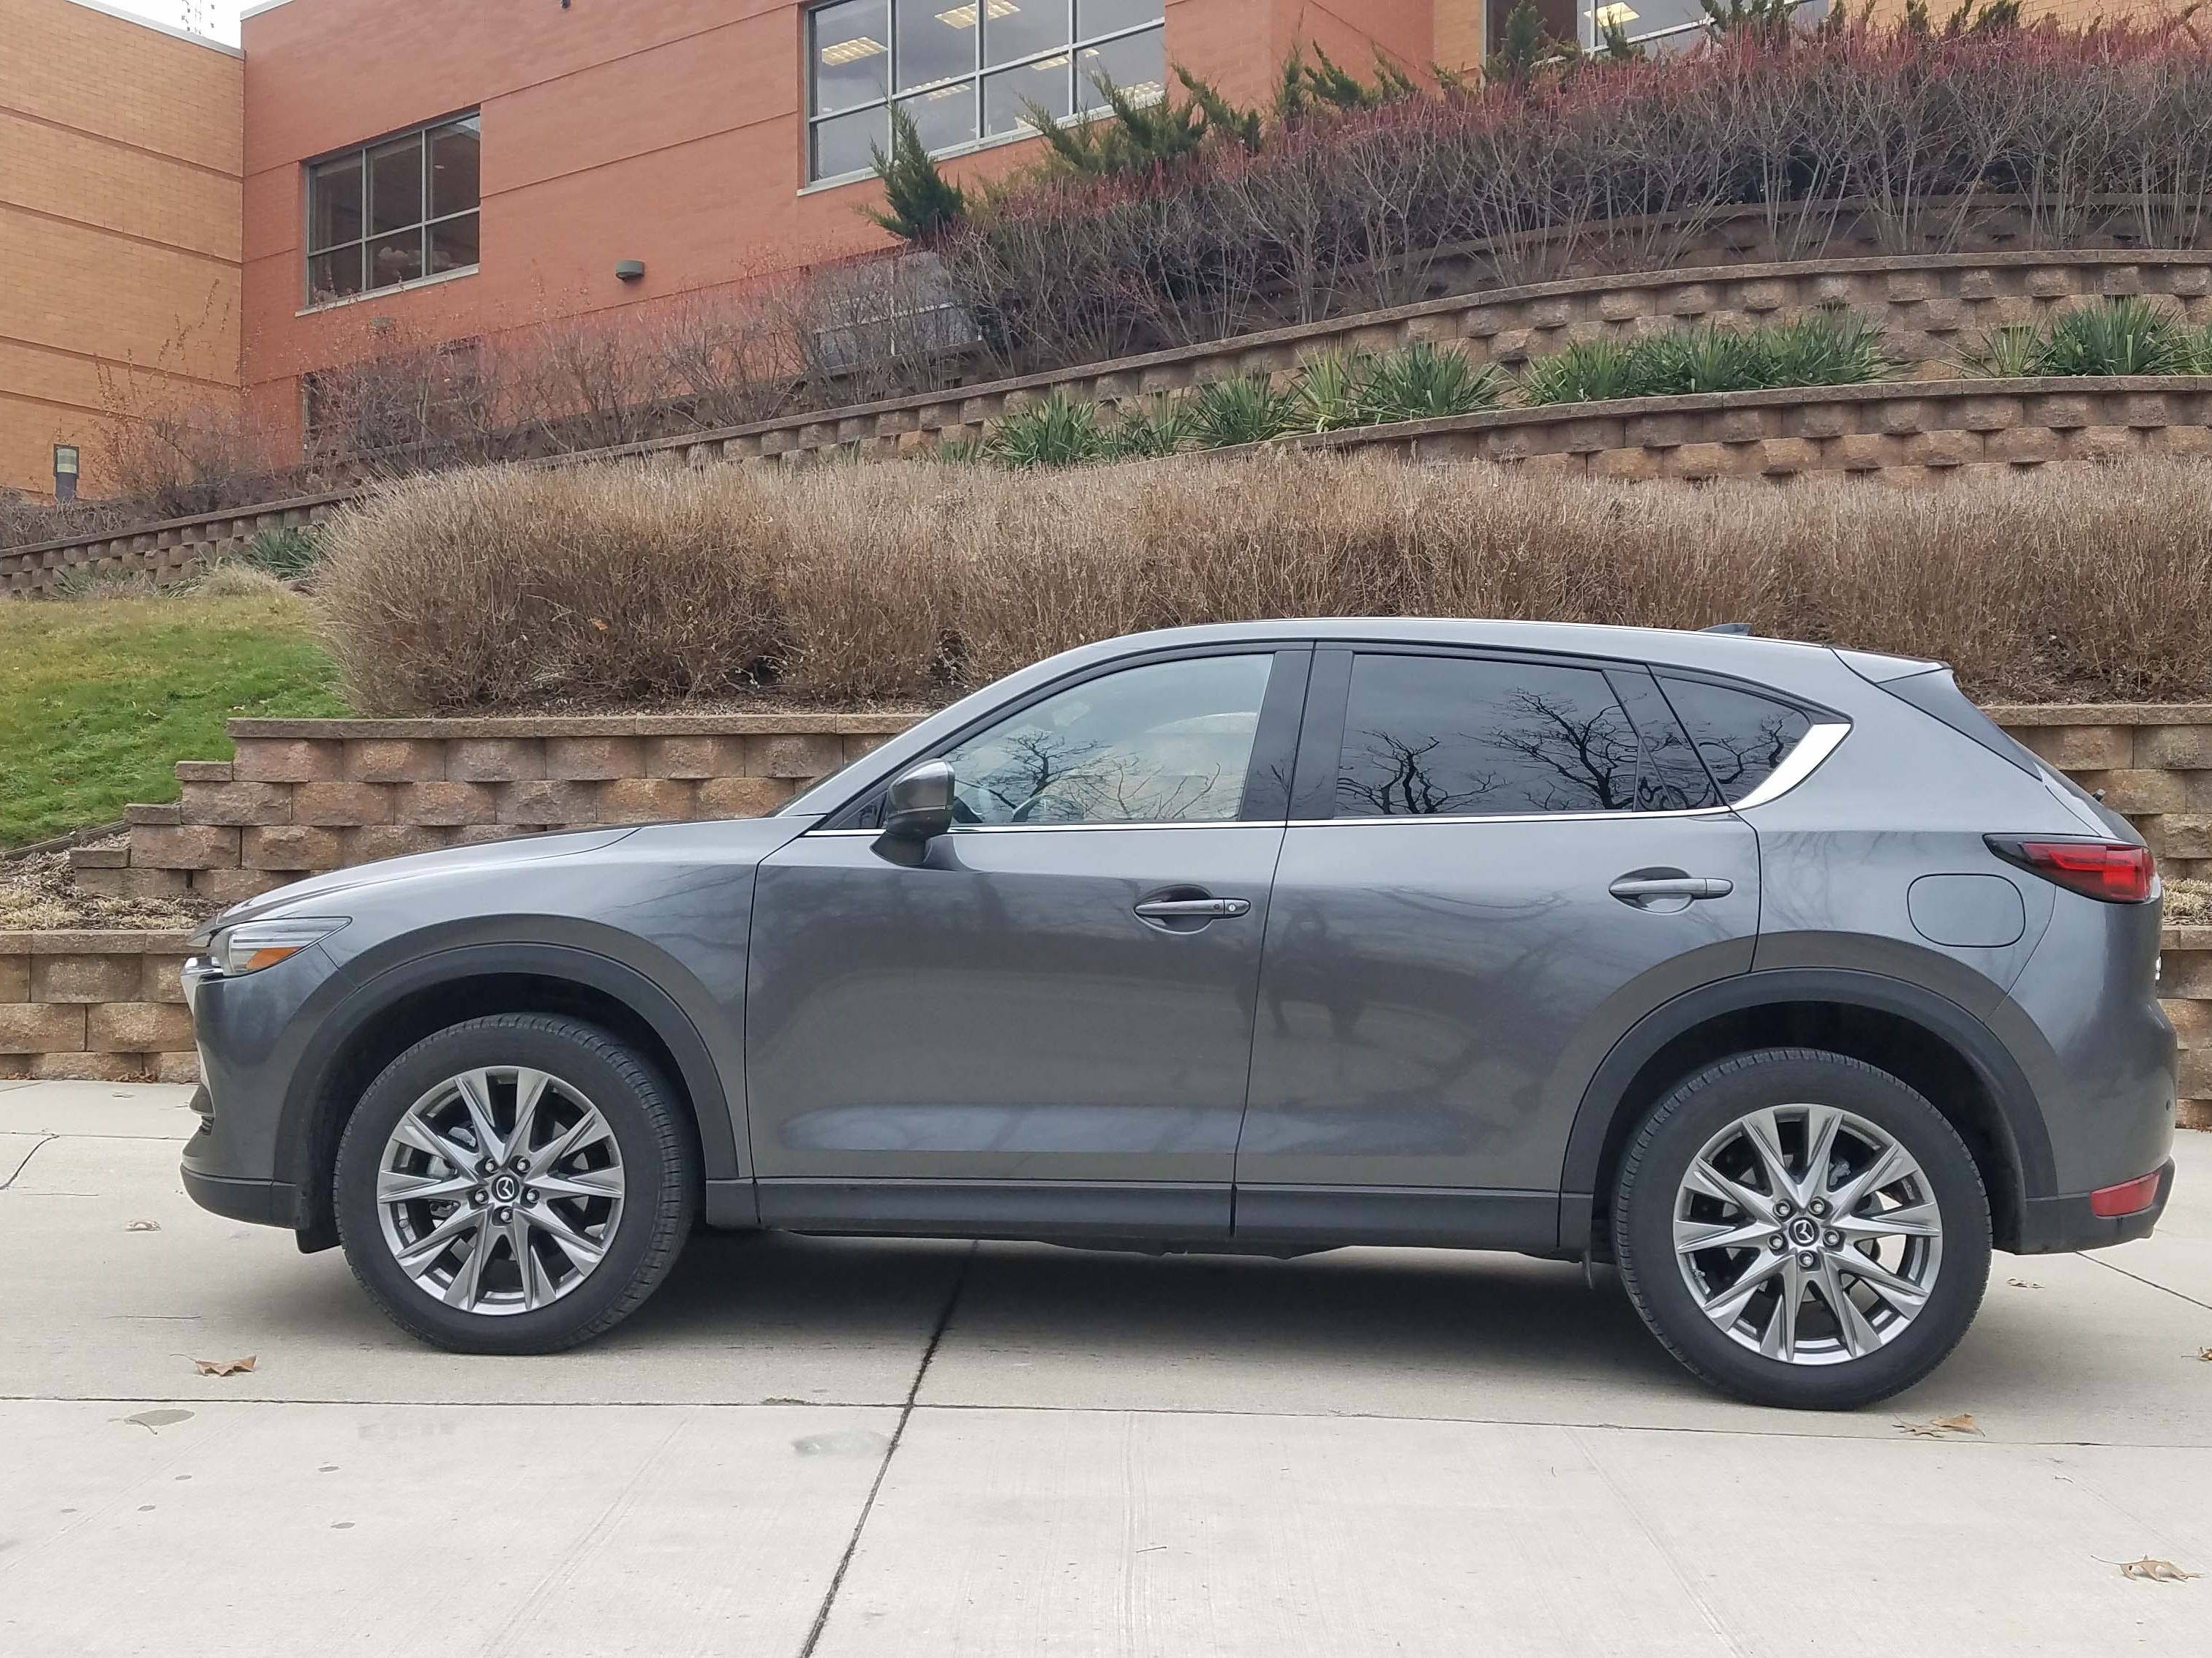 With narrow greenhouse and raked lines, the Mazda CX-5 Signature gives off a sporty vibe.